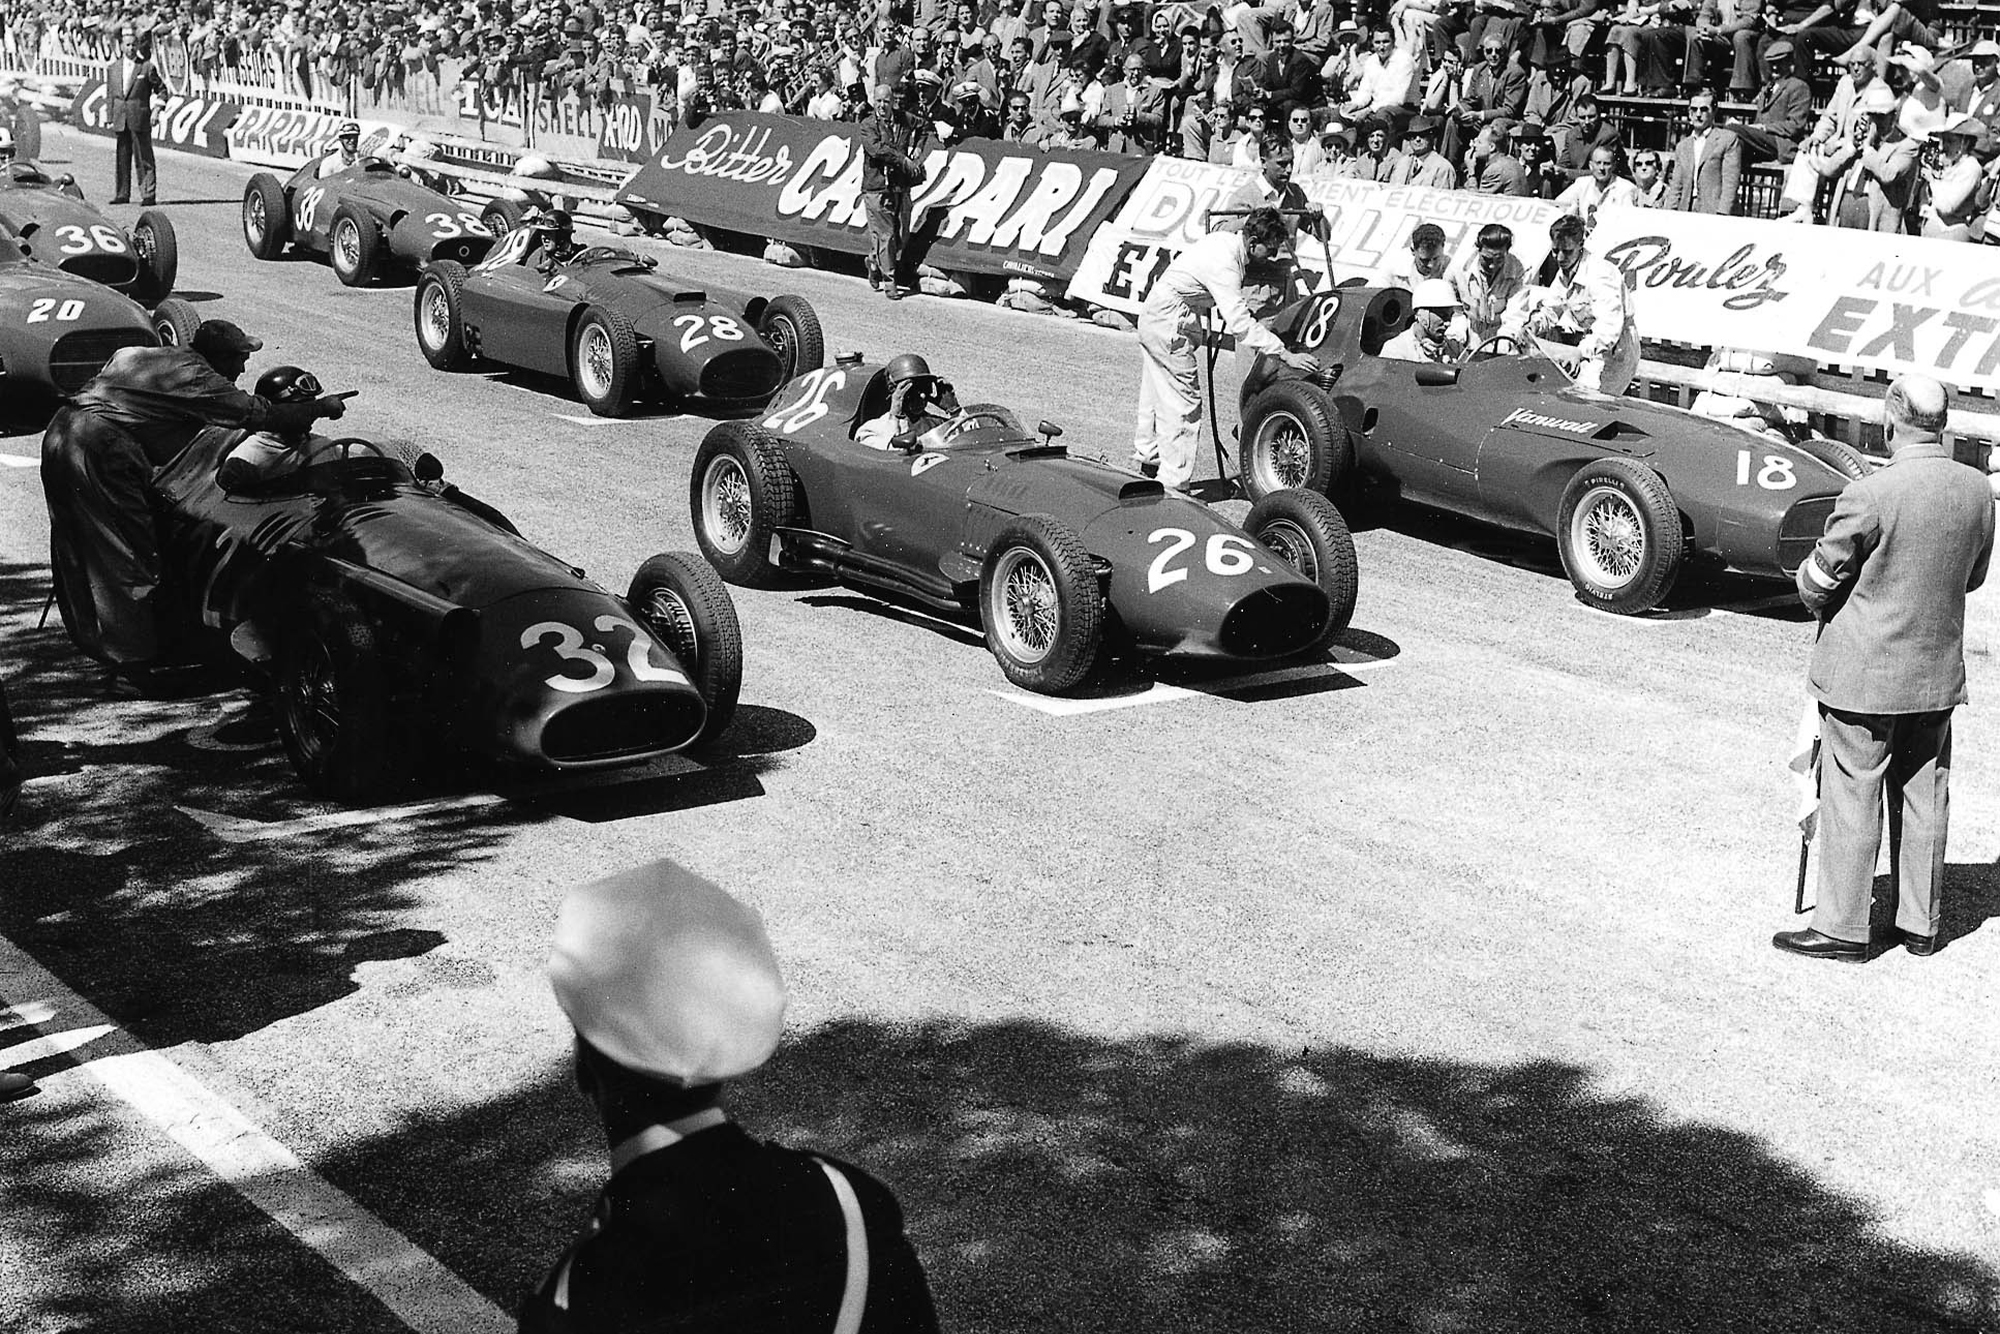 Juan Manuel Fangio (number 32, Maserati 250F), Peter Collins (Lancia-Ferrari D50 801) and Stirling Moss (Vanwall) on the front row of the 1957 Monaco Grand Prix starting grid.